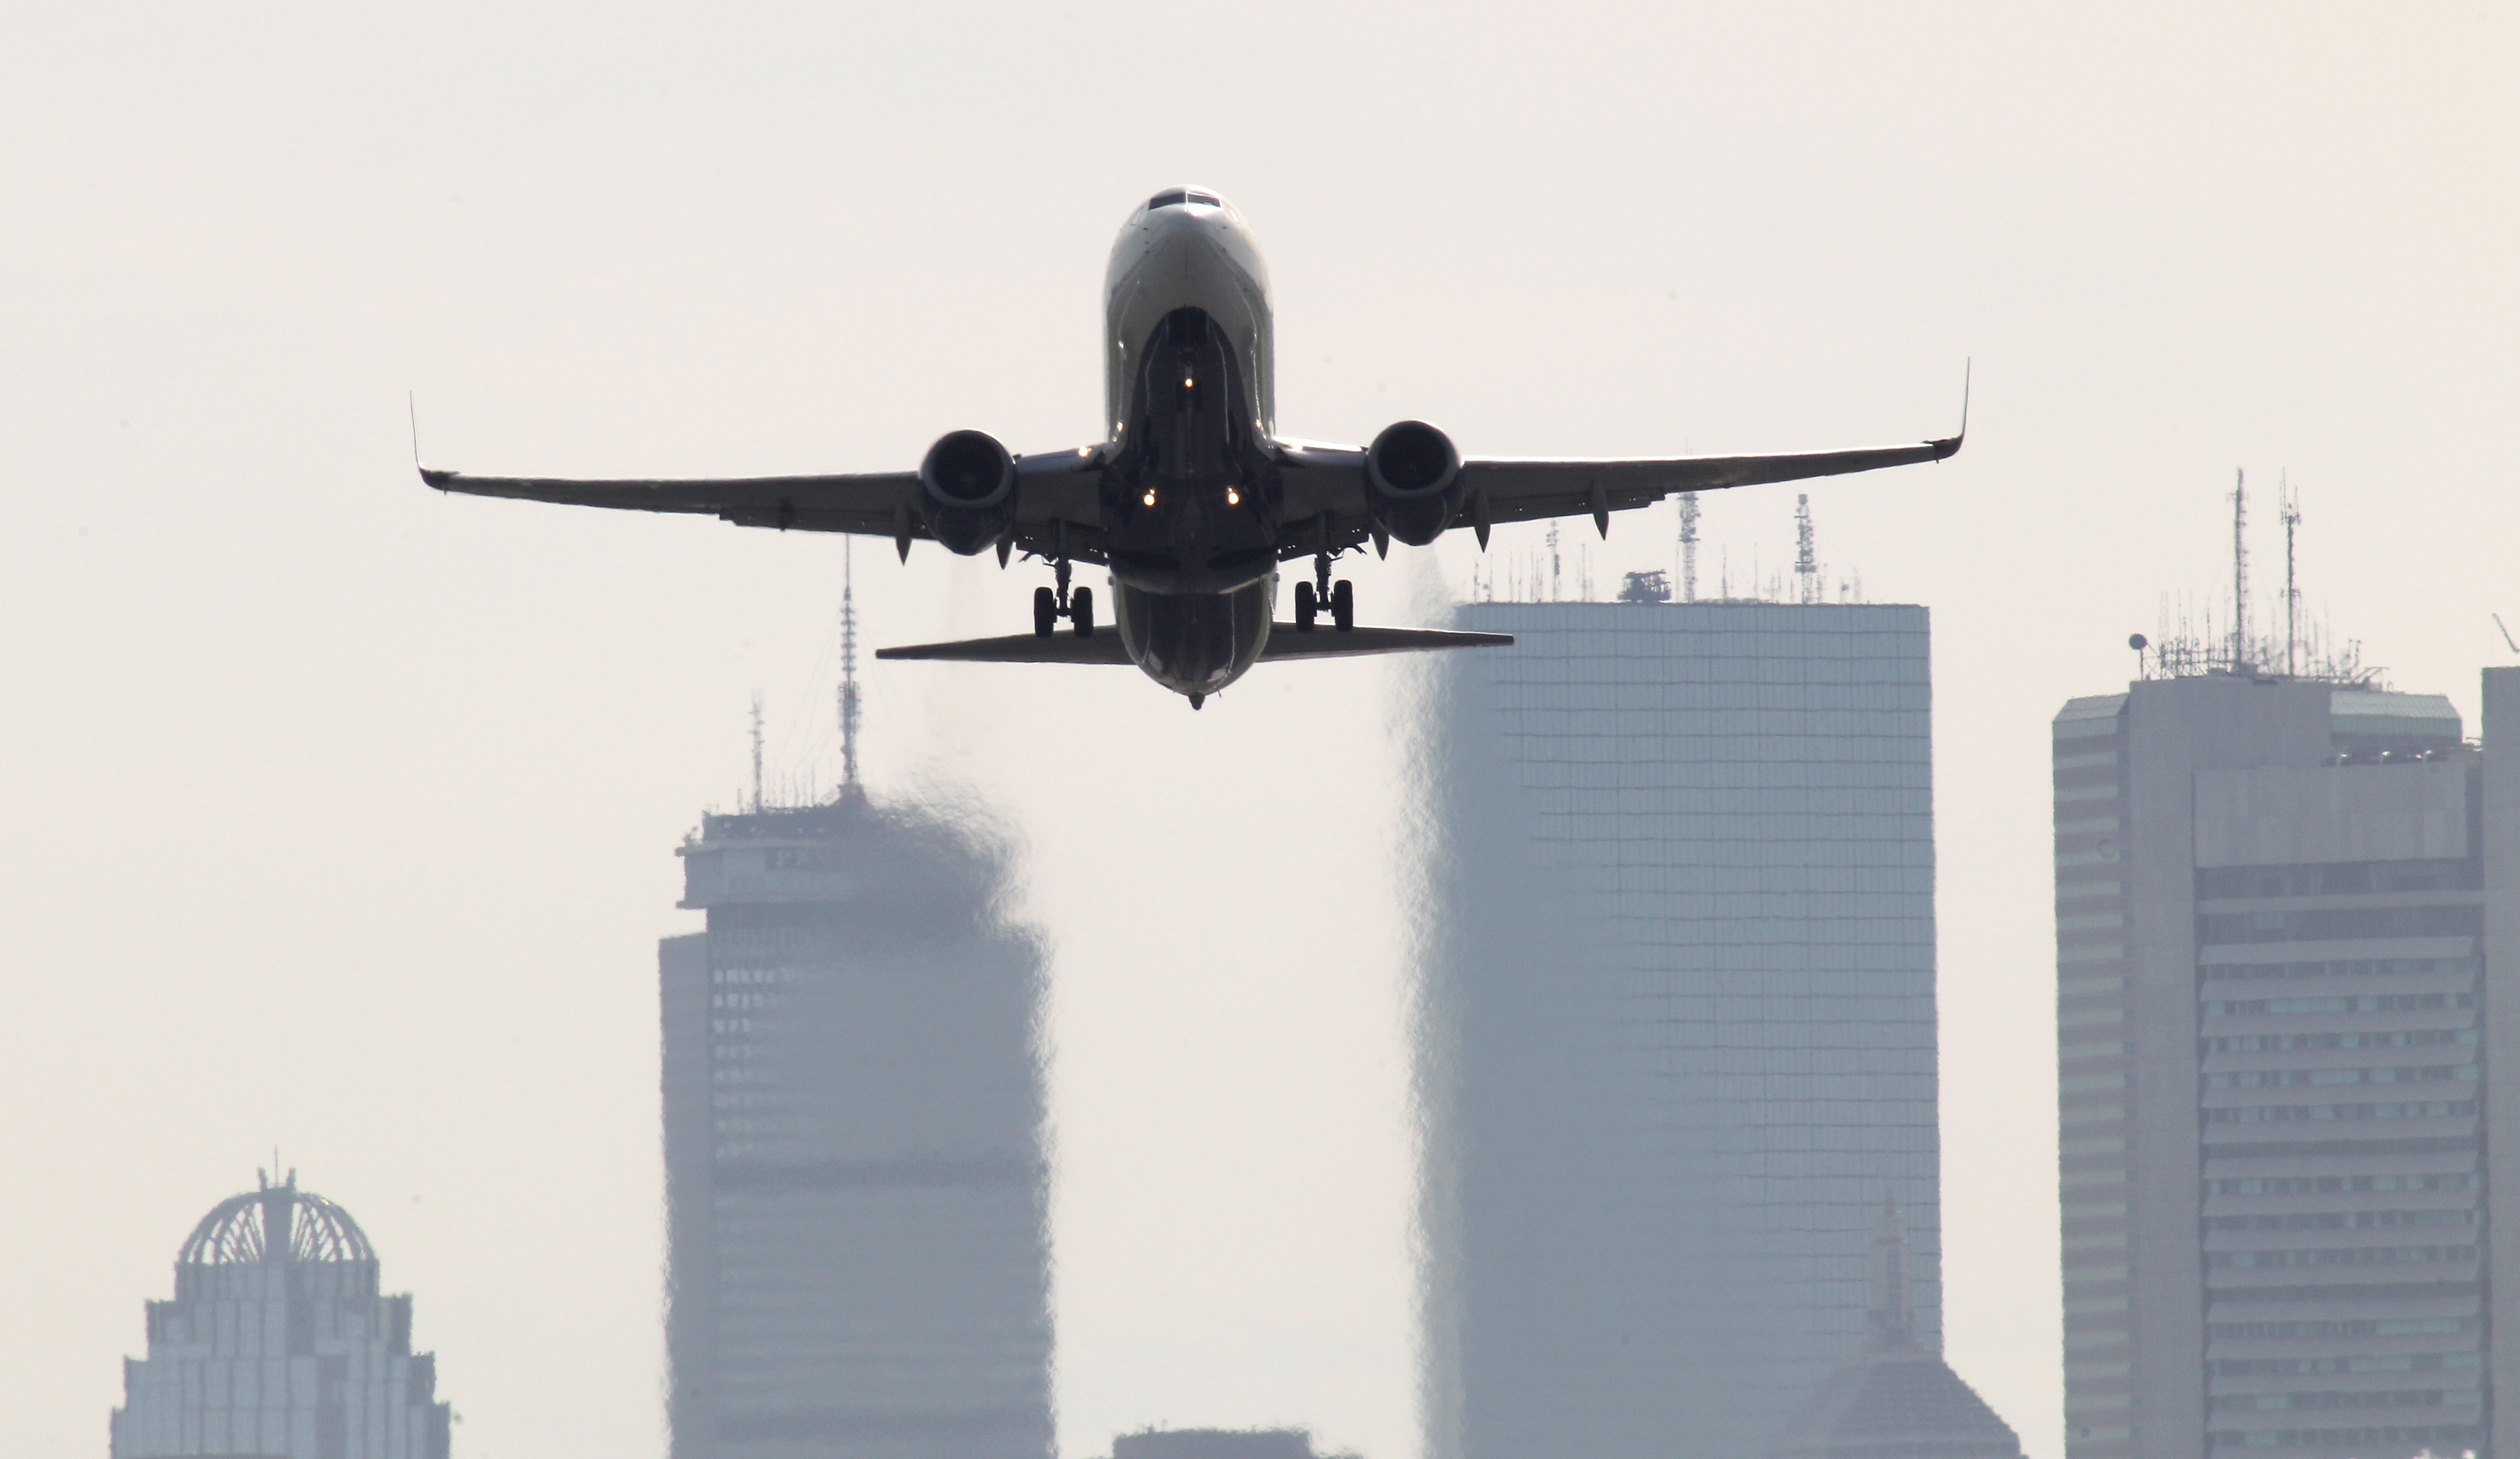 A plane takes off from Logan Airport.